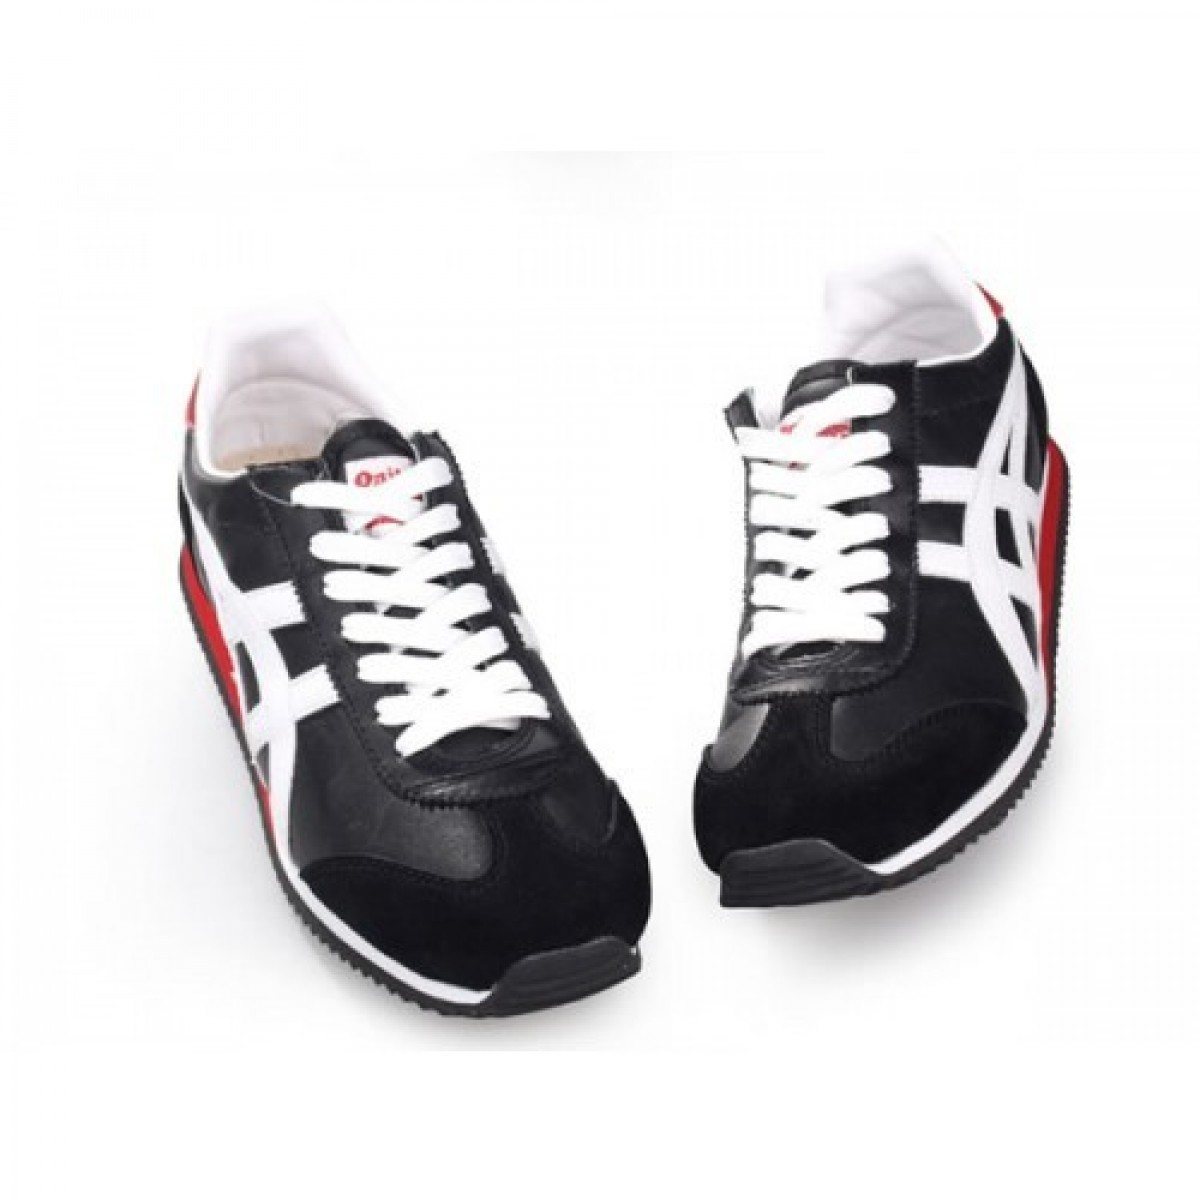 SP9328 Soldes Asics Onitsuka Tiger California Chaussures Noir Blanc Rouge 03891691 Pas Cher